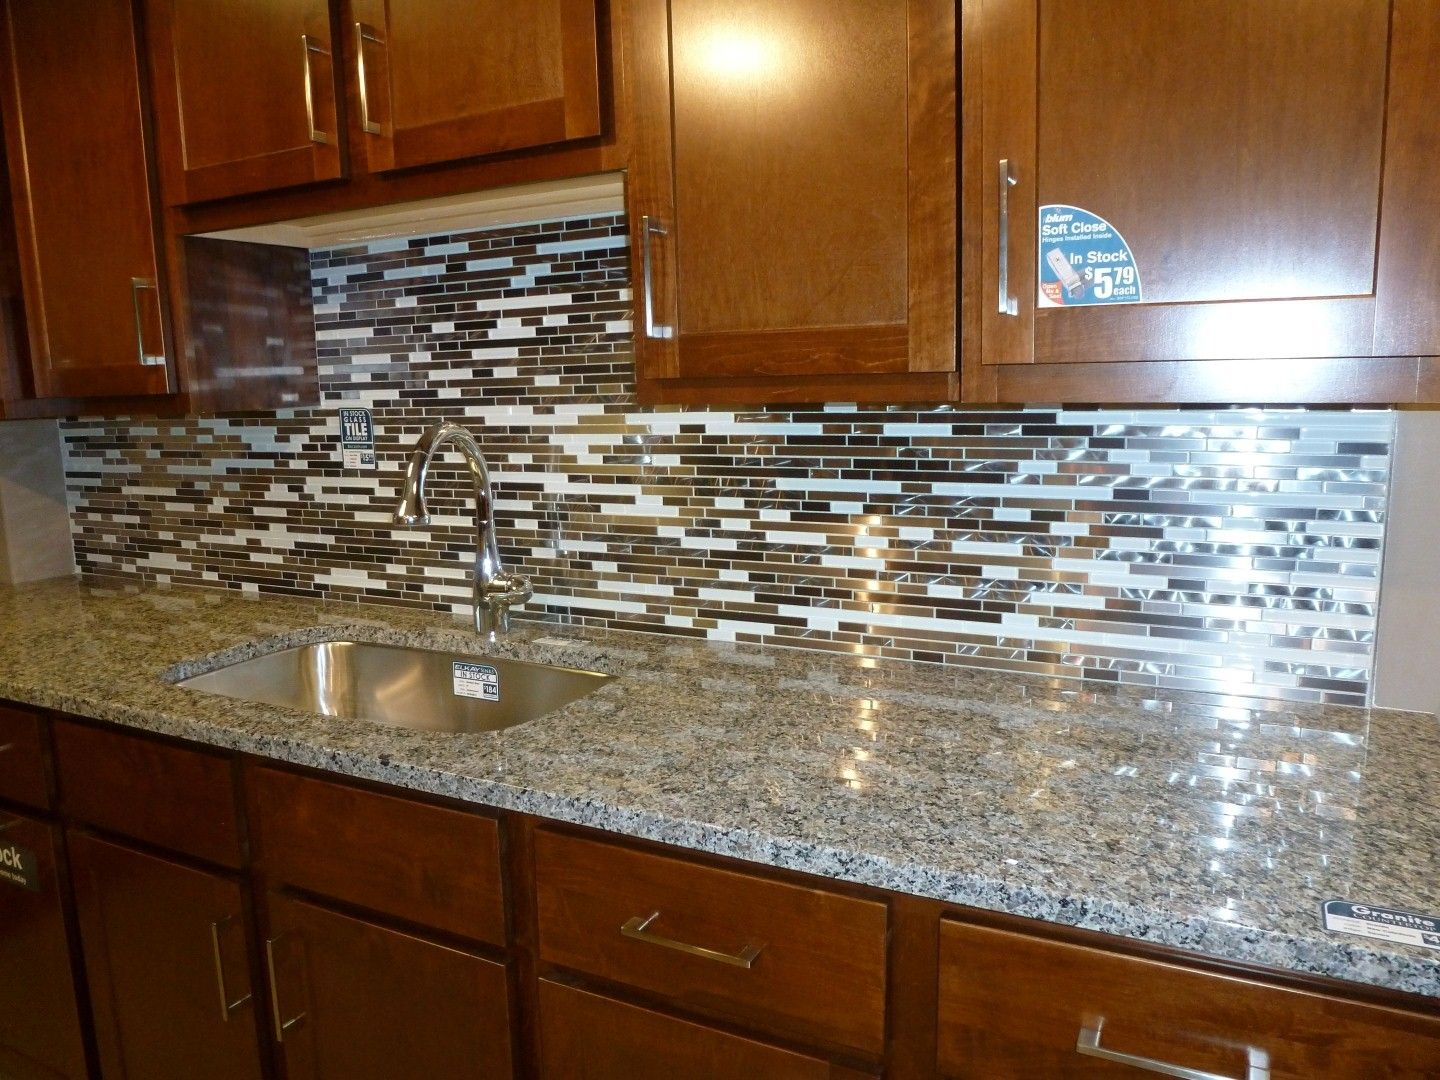 Glass tile kitchen backsplashes pictures metal and white glass random strips backsplash tile Design kitchen backsplash glass tiles